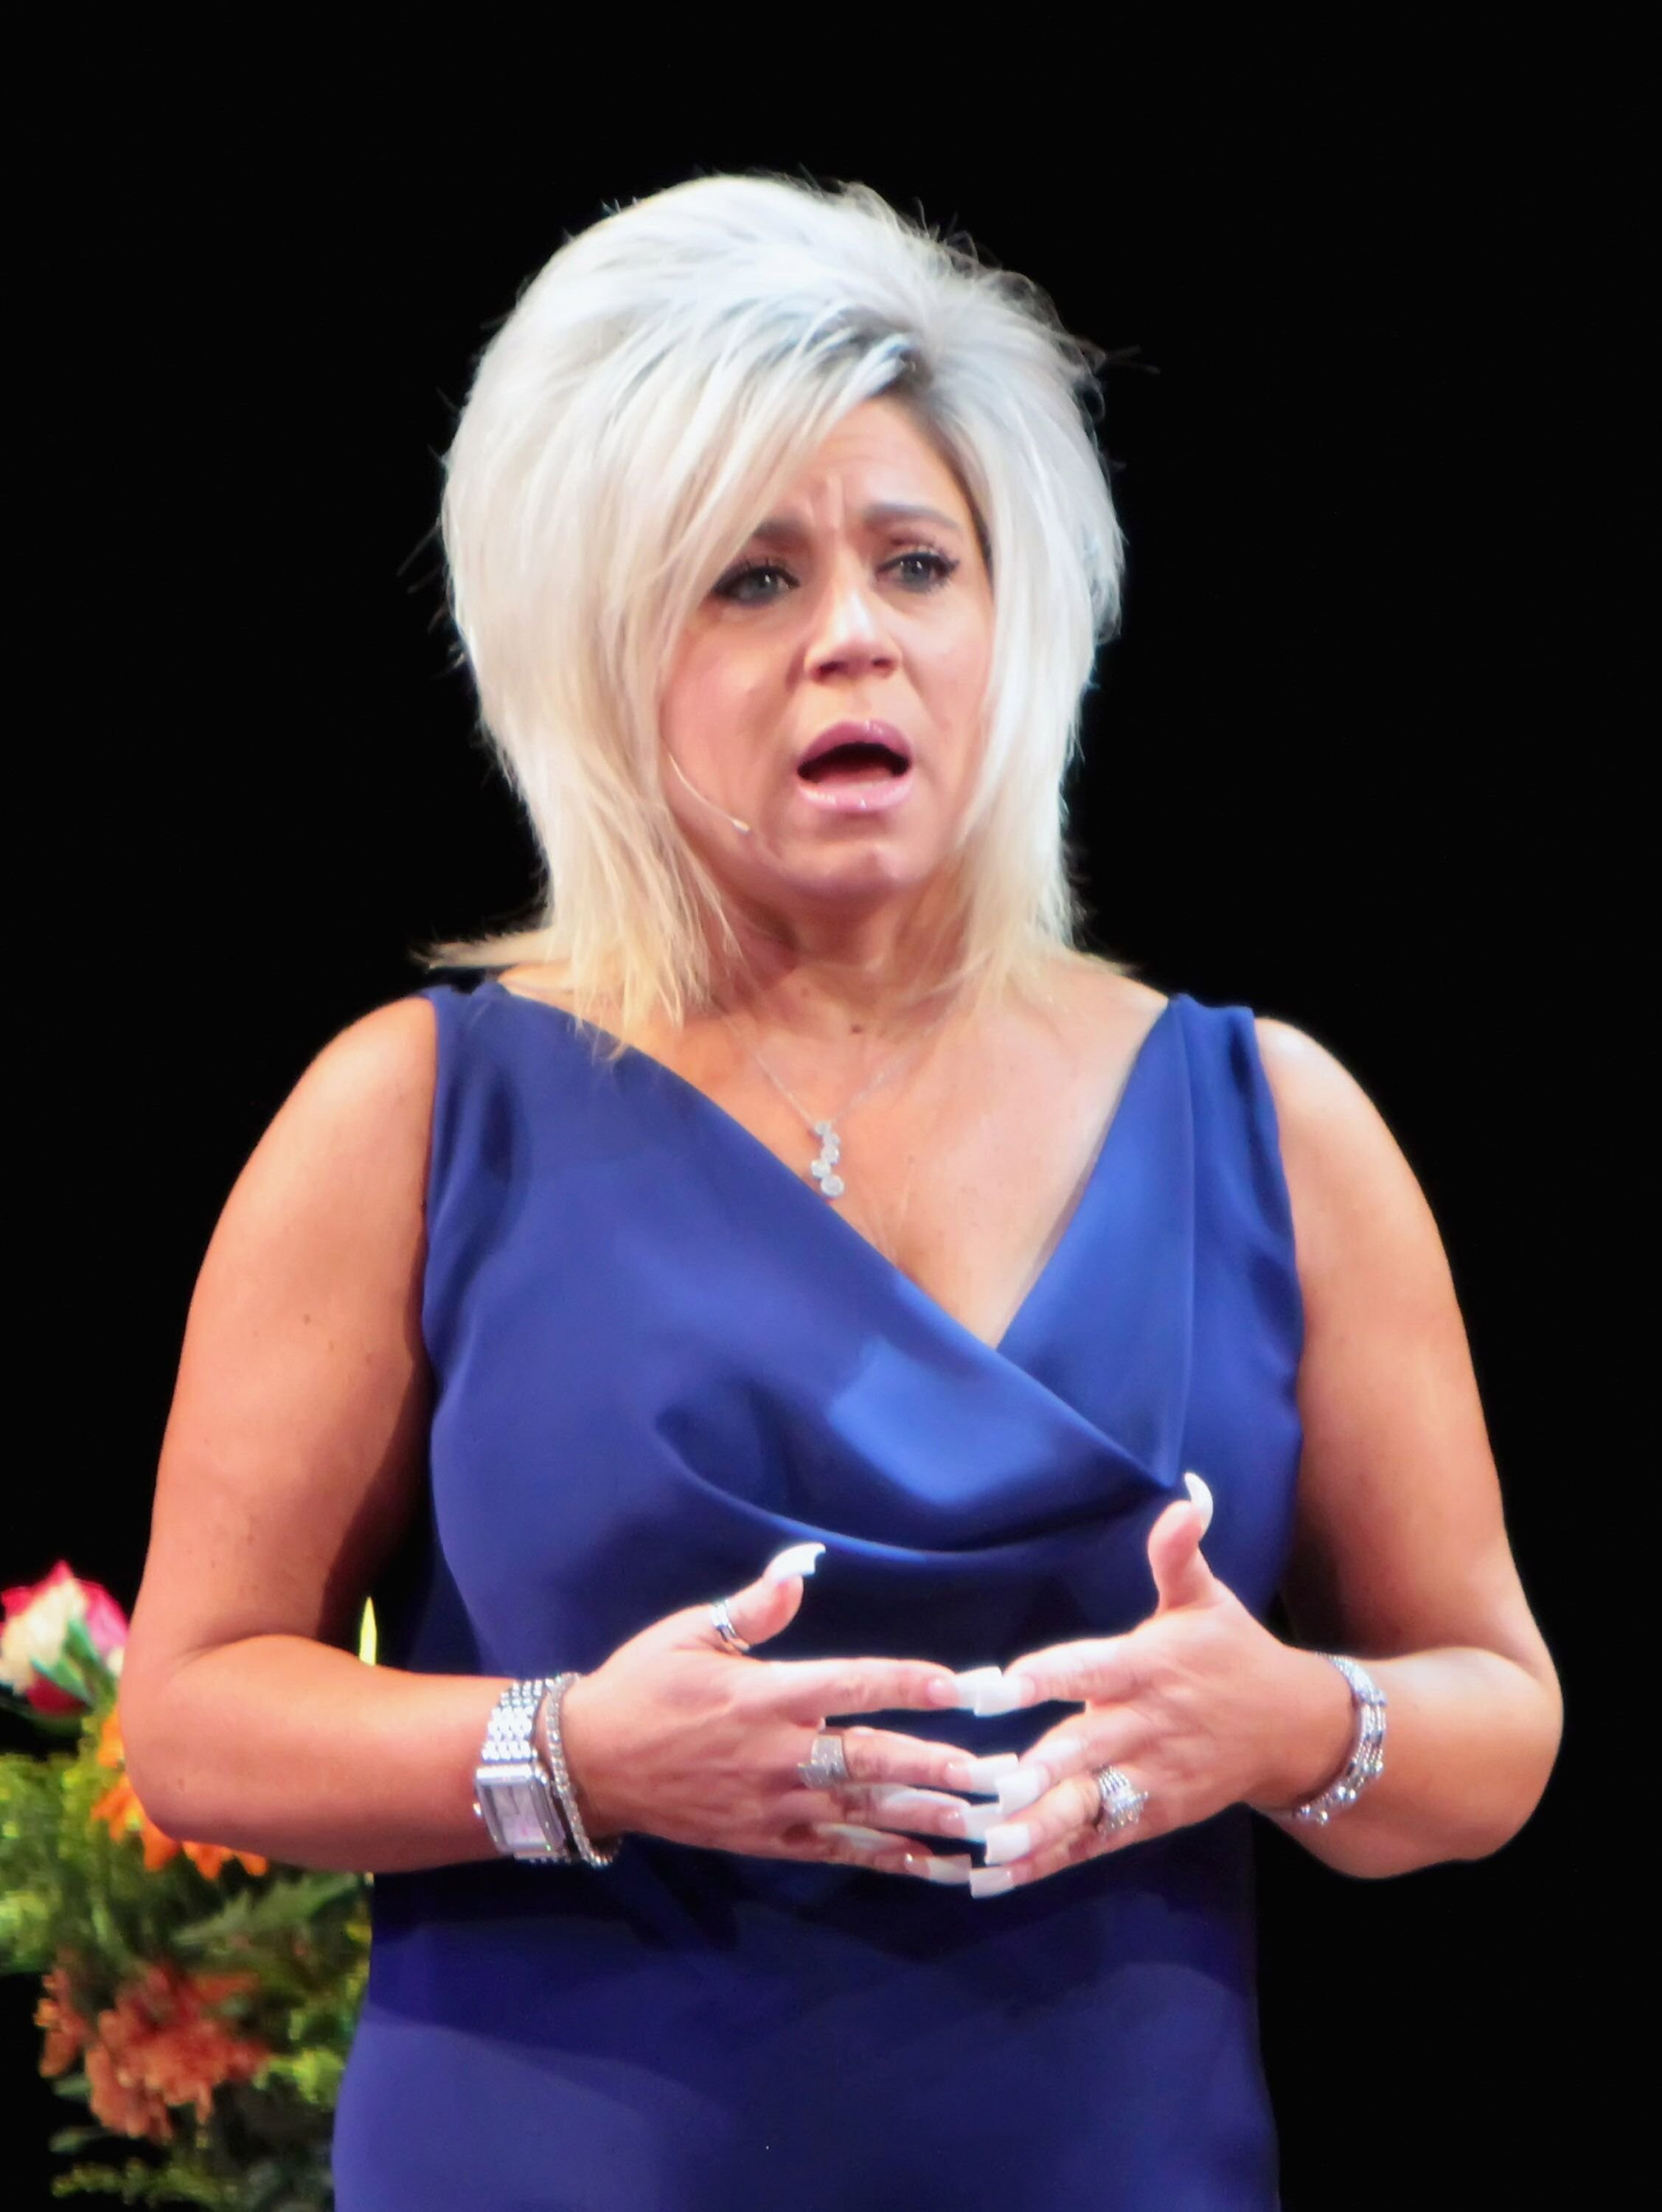 Theresa Caputo appears on stage at the Tropicana Showroom. | Source: Getty Images